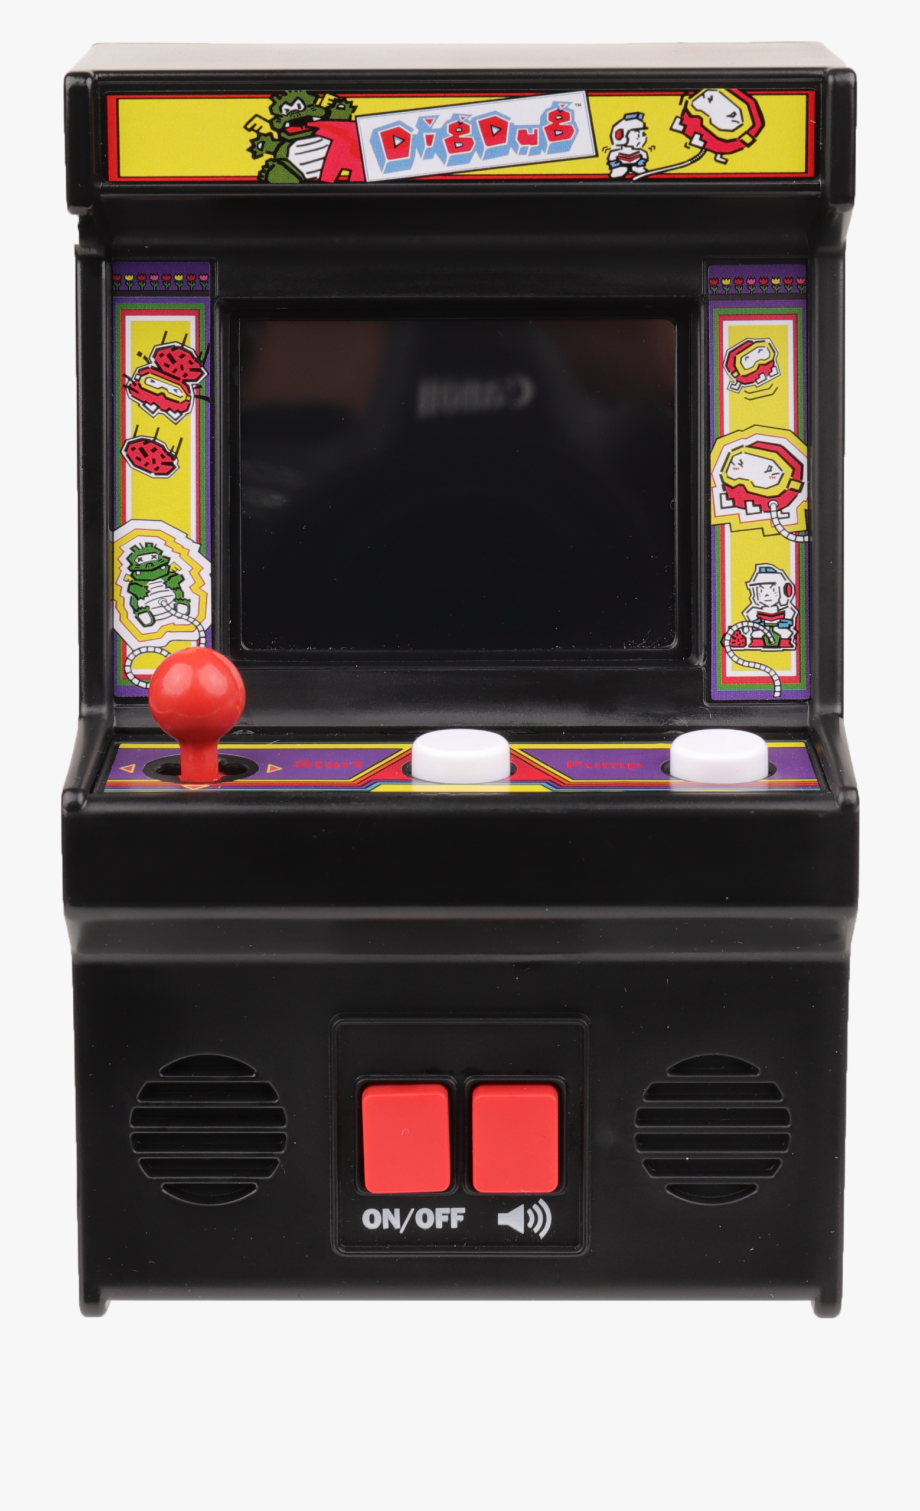 png transparent stock Arcade clipart gaming. Video game cabinet free.